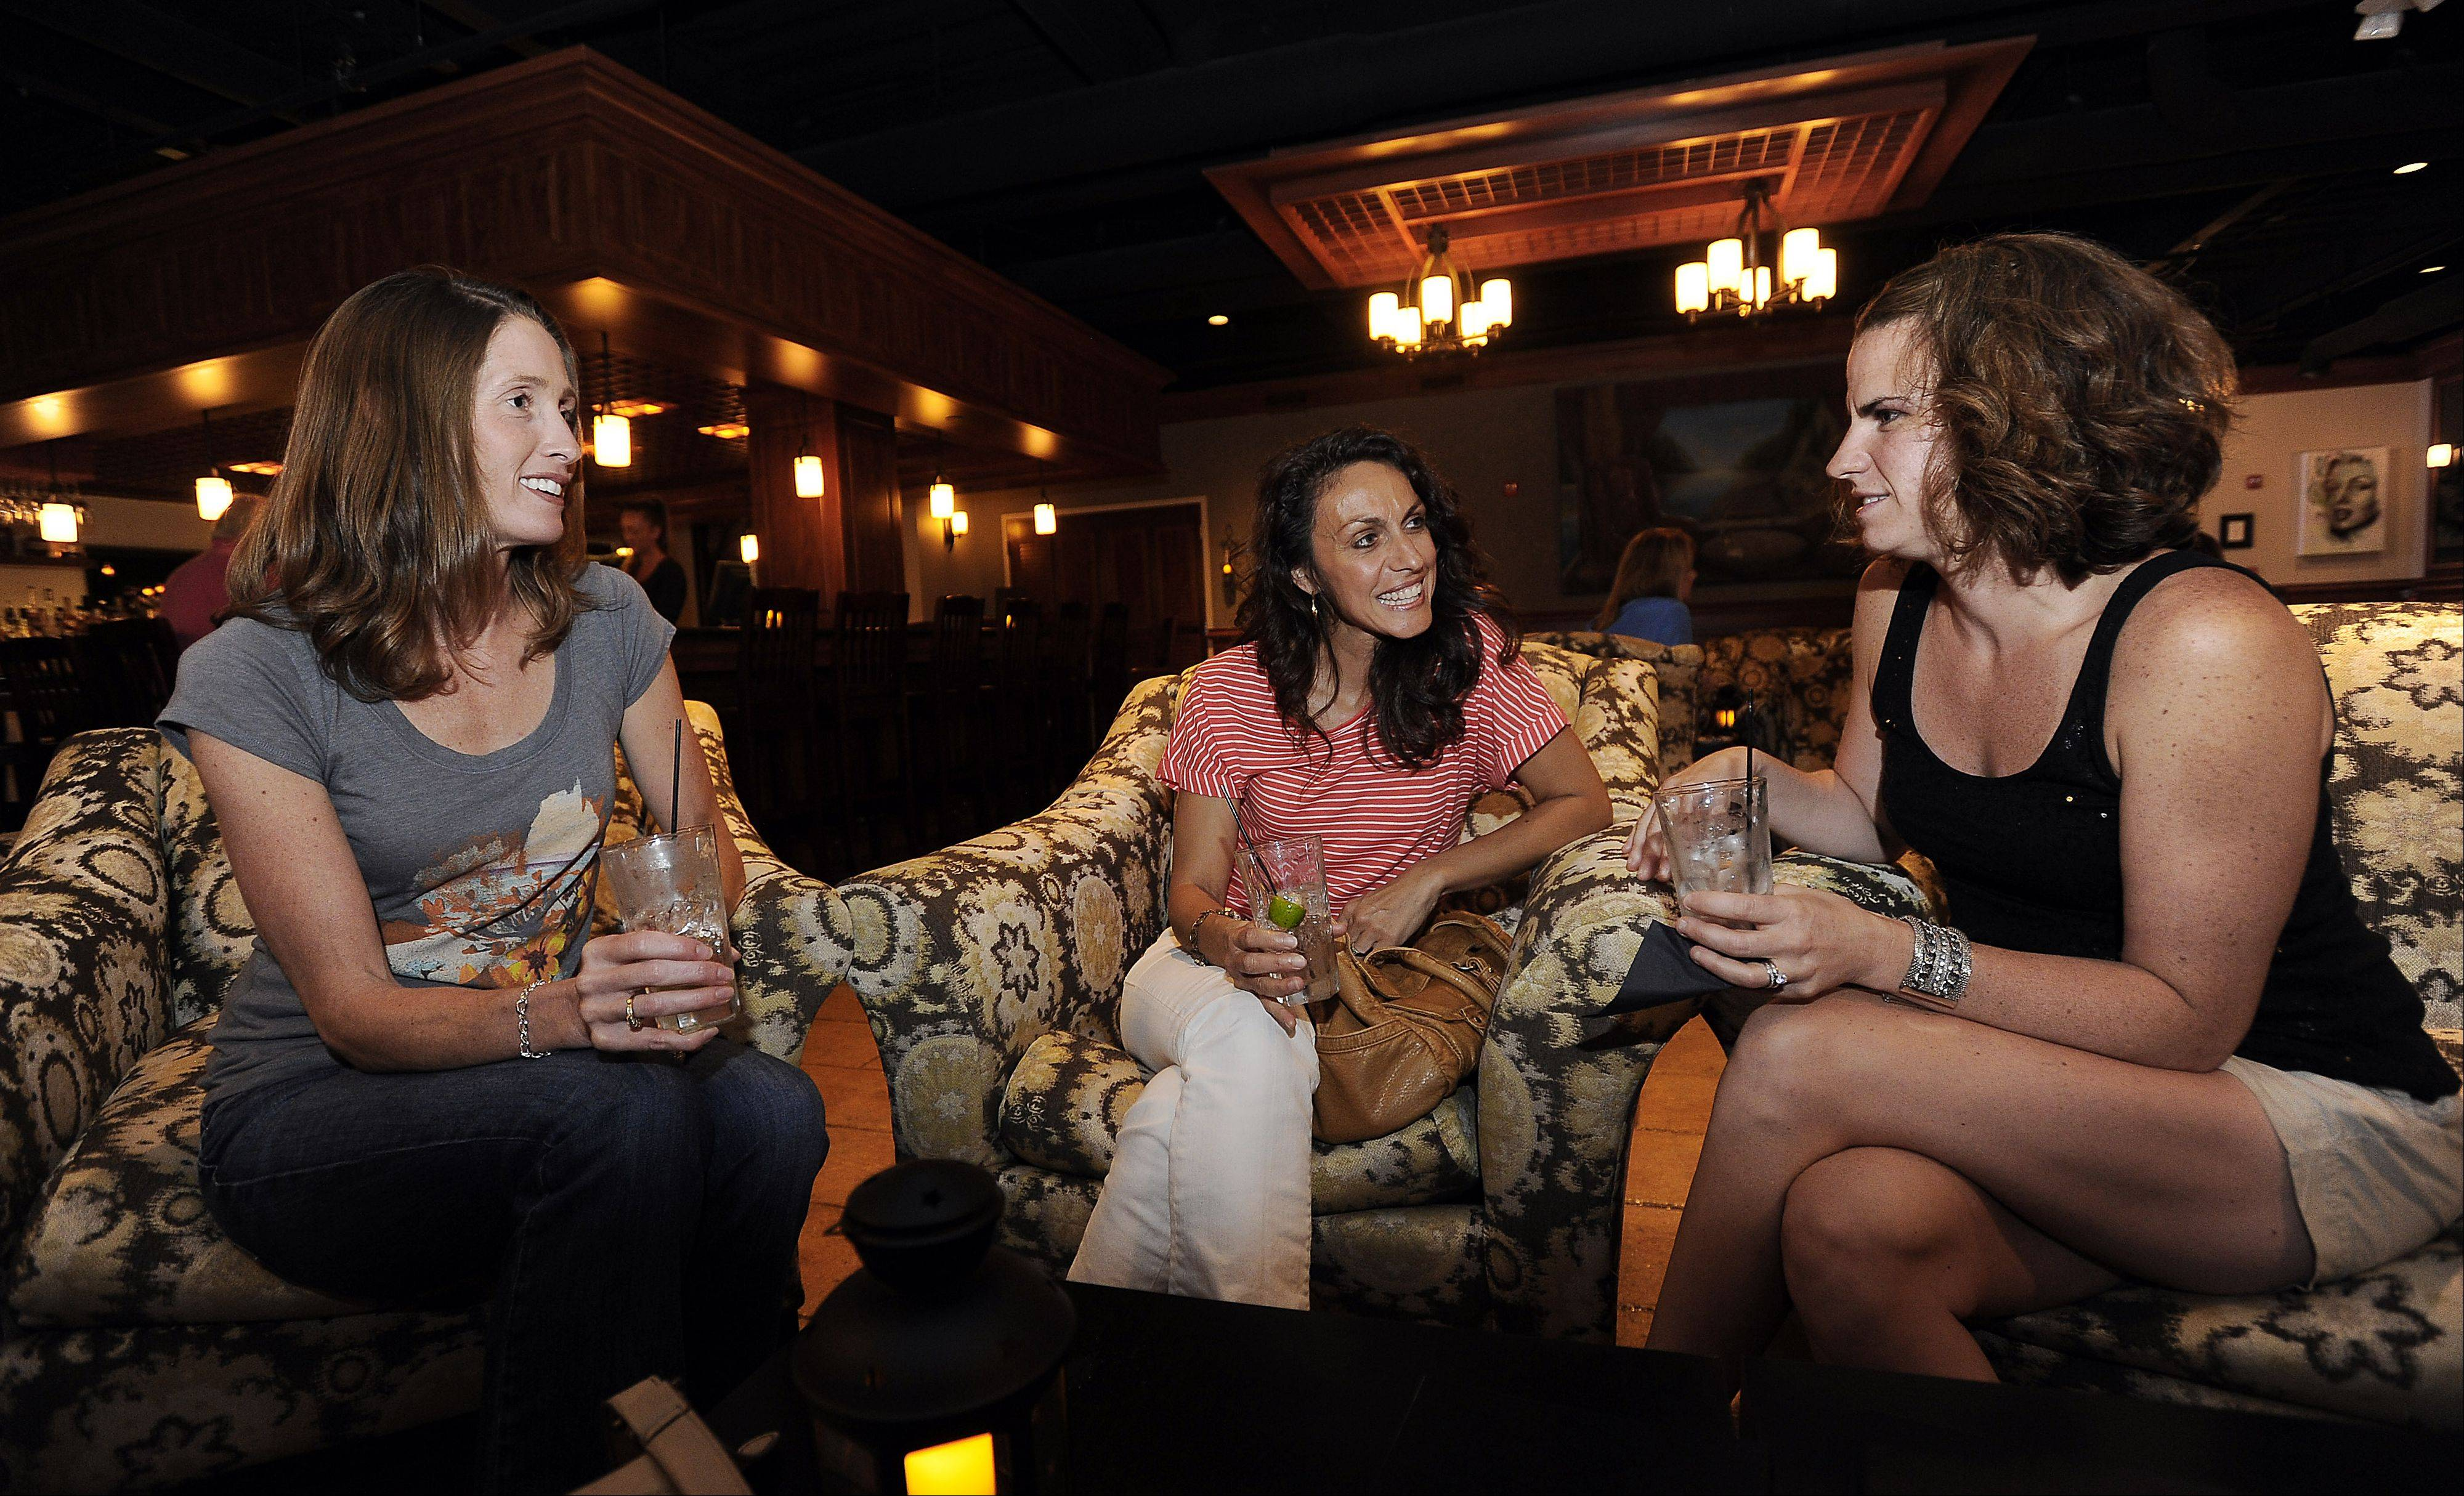 Alissa Kaspan, of Crystal Lake, enjoys drinks with Tisha Kaspari and Erin Kemp, both of Cary, at Smith Street Station in Palatine.